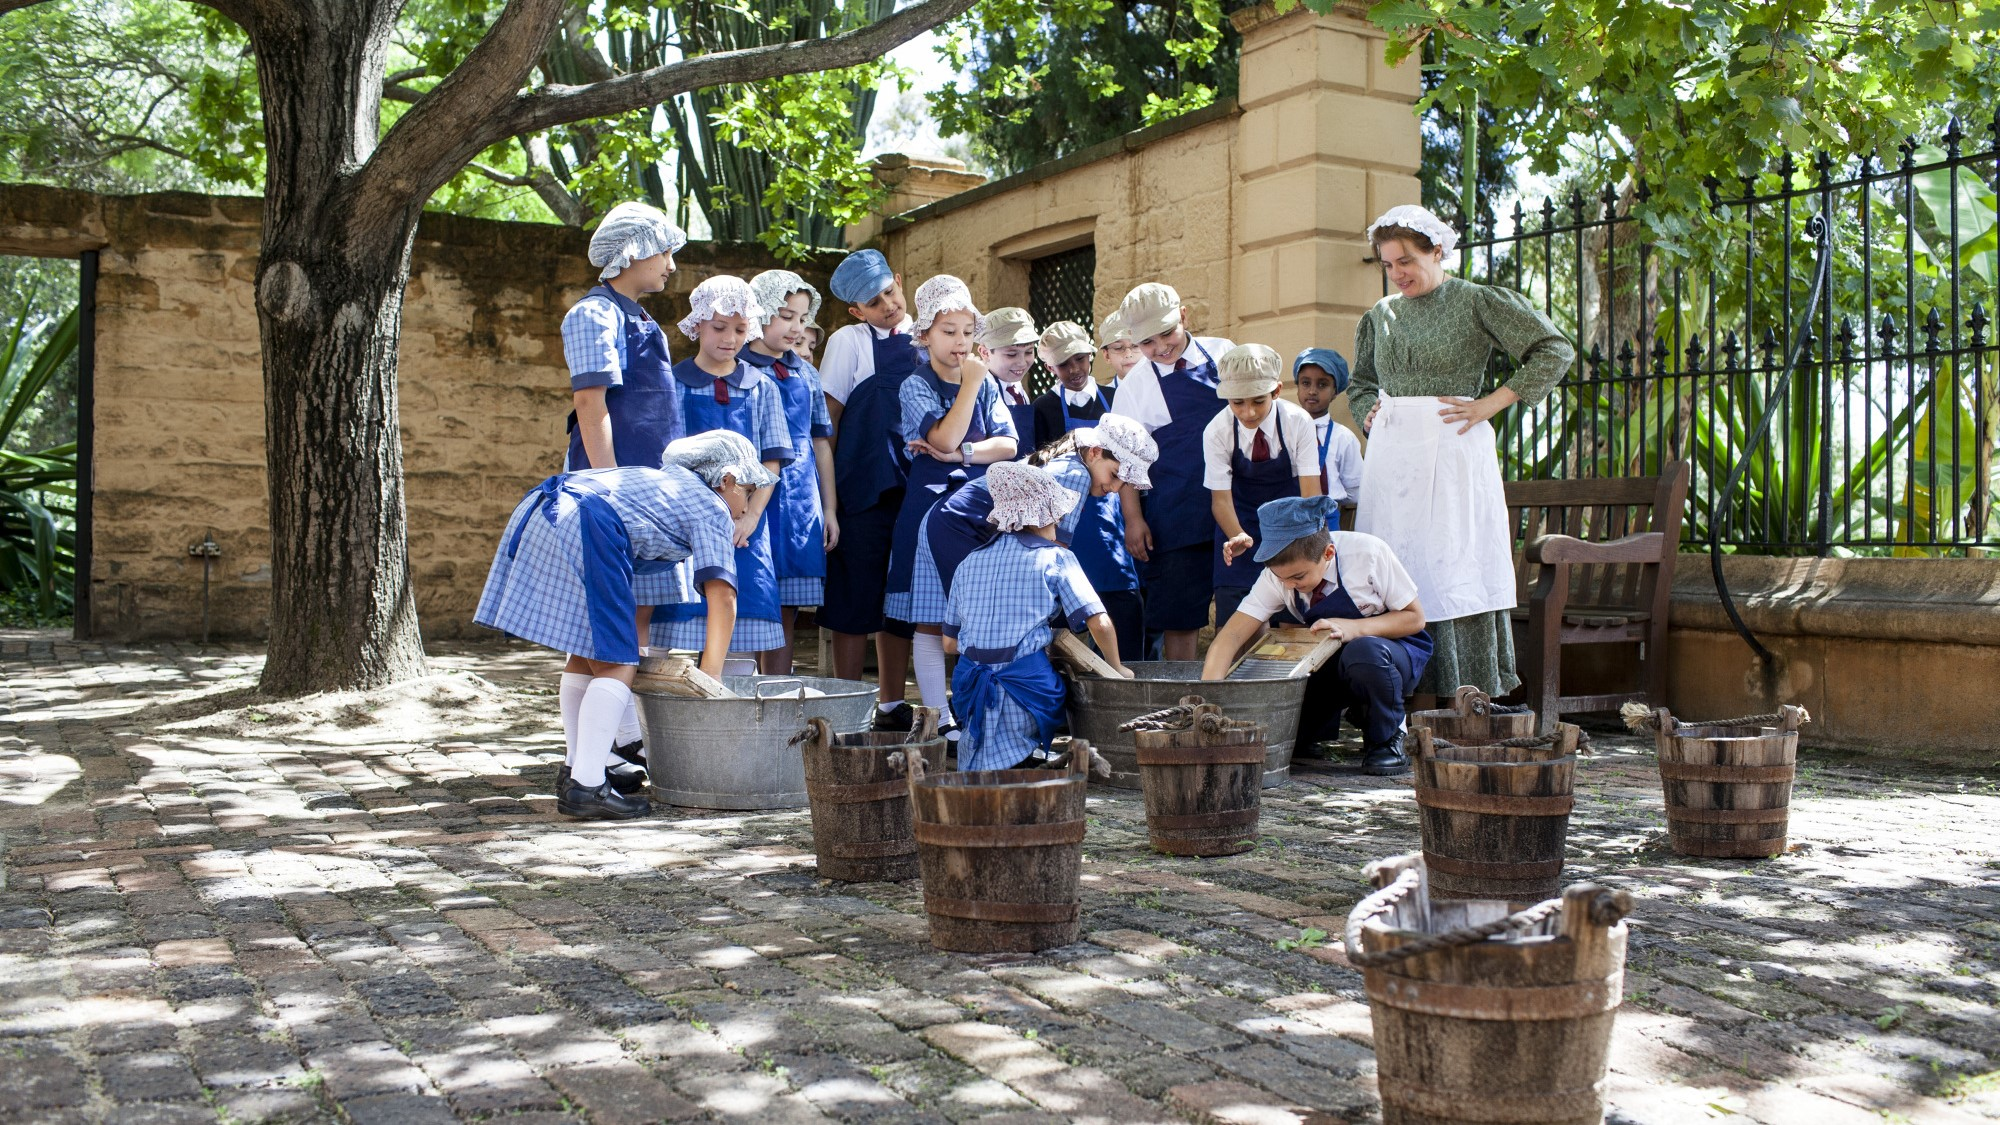 Students dressed as convicts washing clothes in sunny courtyard.